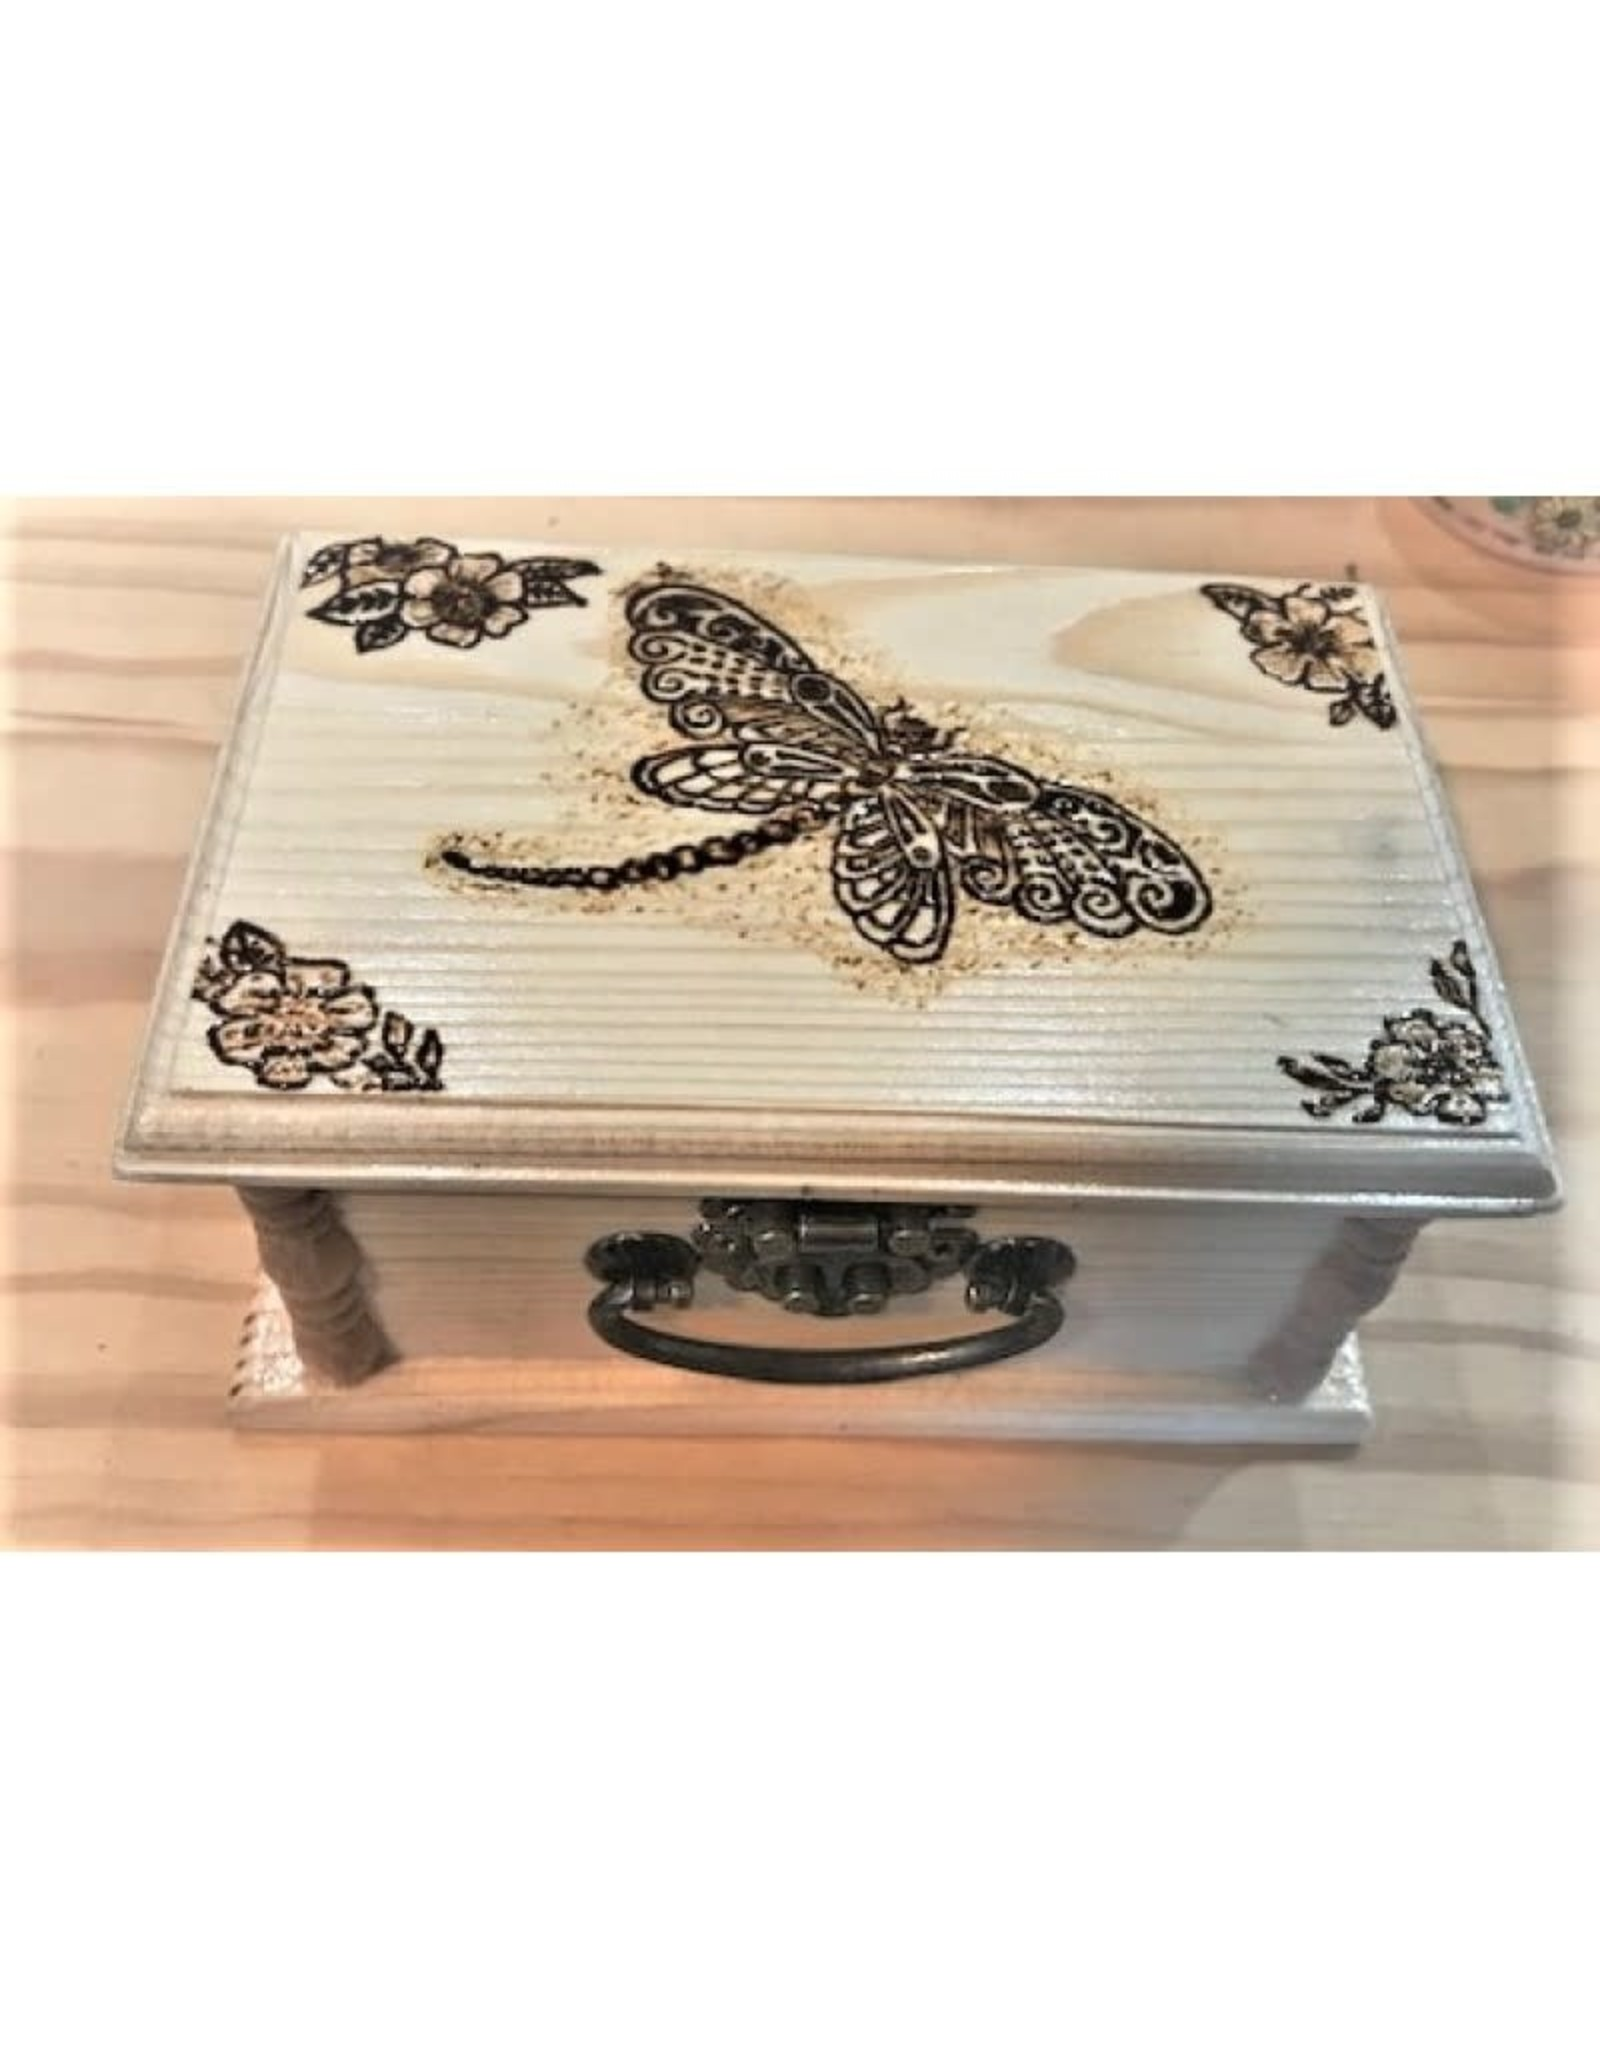 CraftCesi Handmade Wooden Jewelry Box - Dragonfly Natural